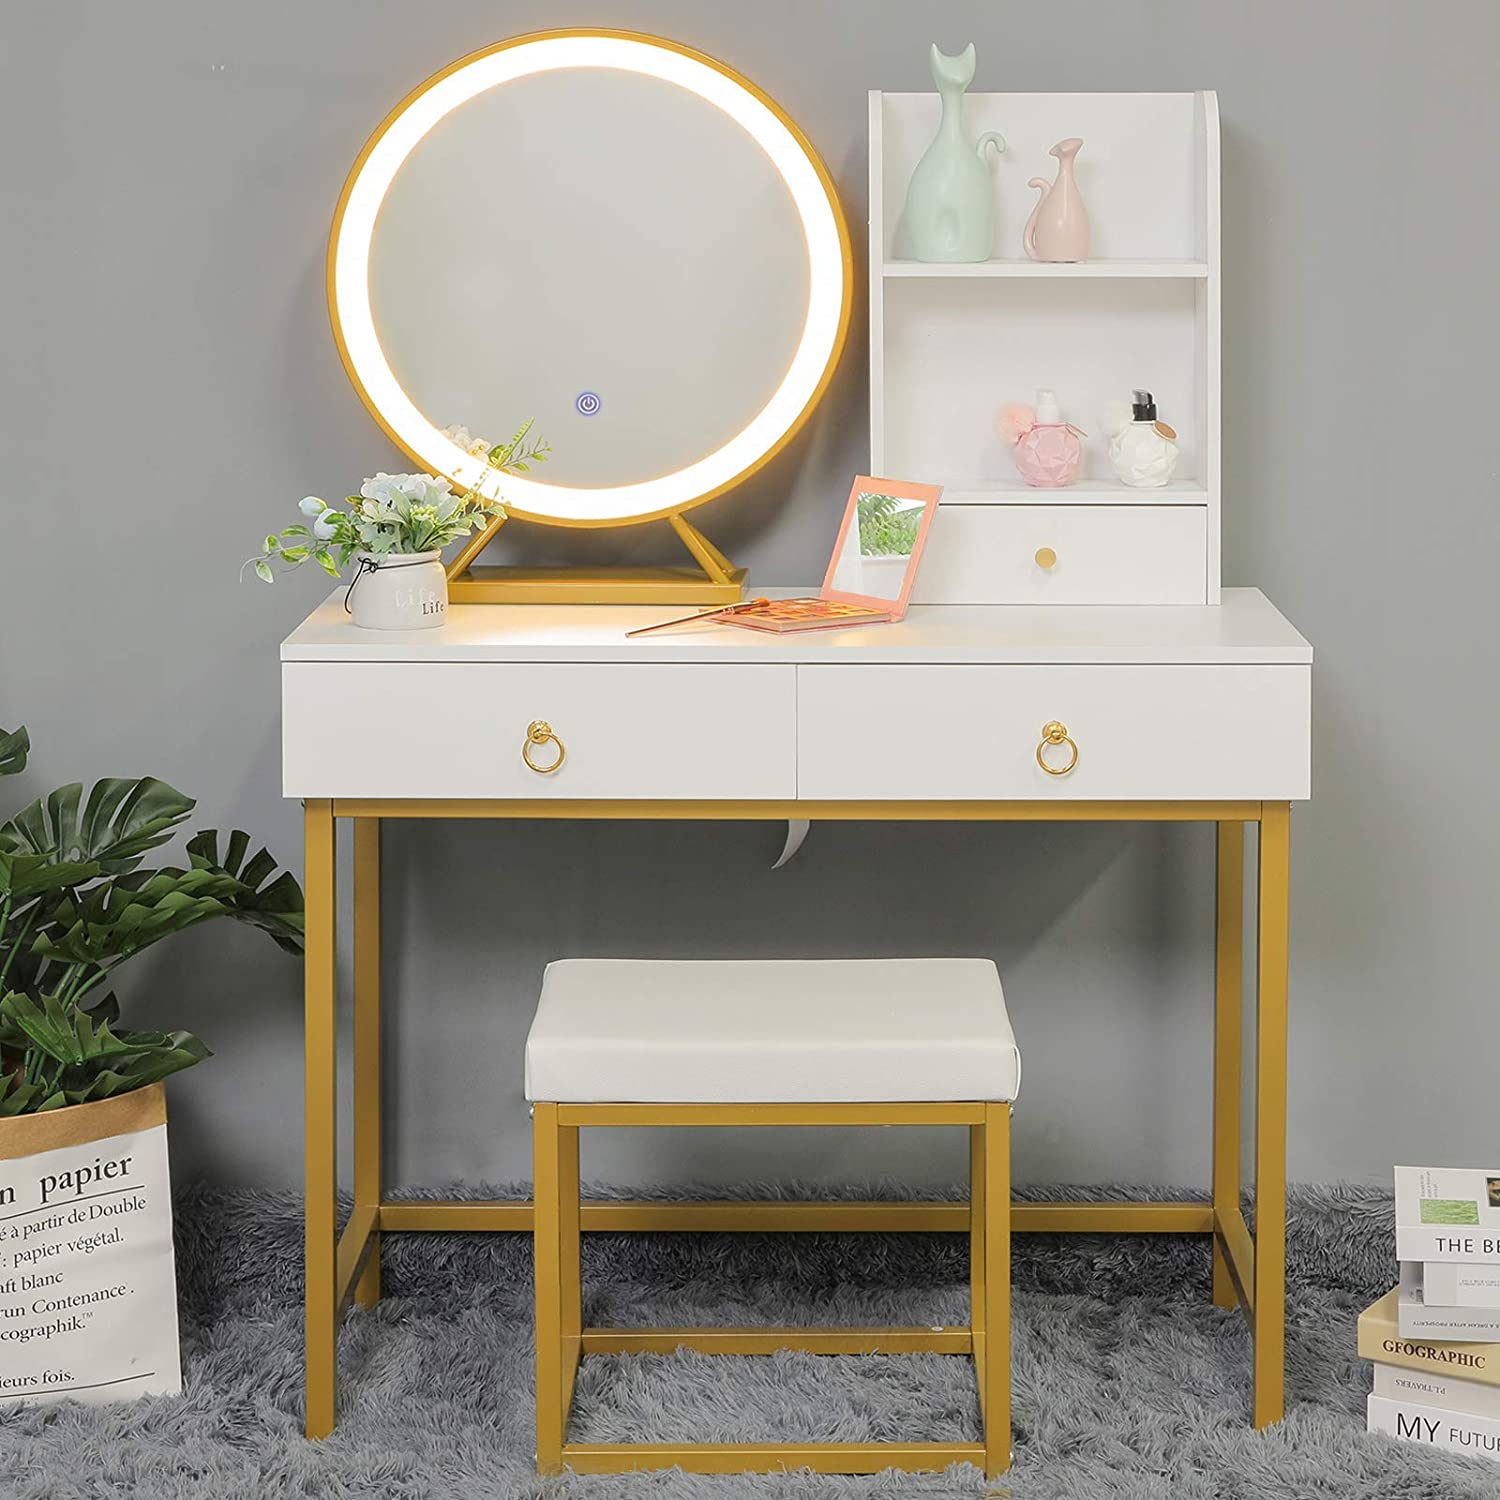 USIKEY Vanity Set with Lighted Mirror, Makeup Vanity Table with 2 Big Drawers, Dressing Vanity Tables with 2 Storage Shelves and Cushioned Stool, White